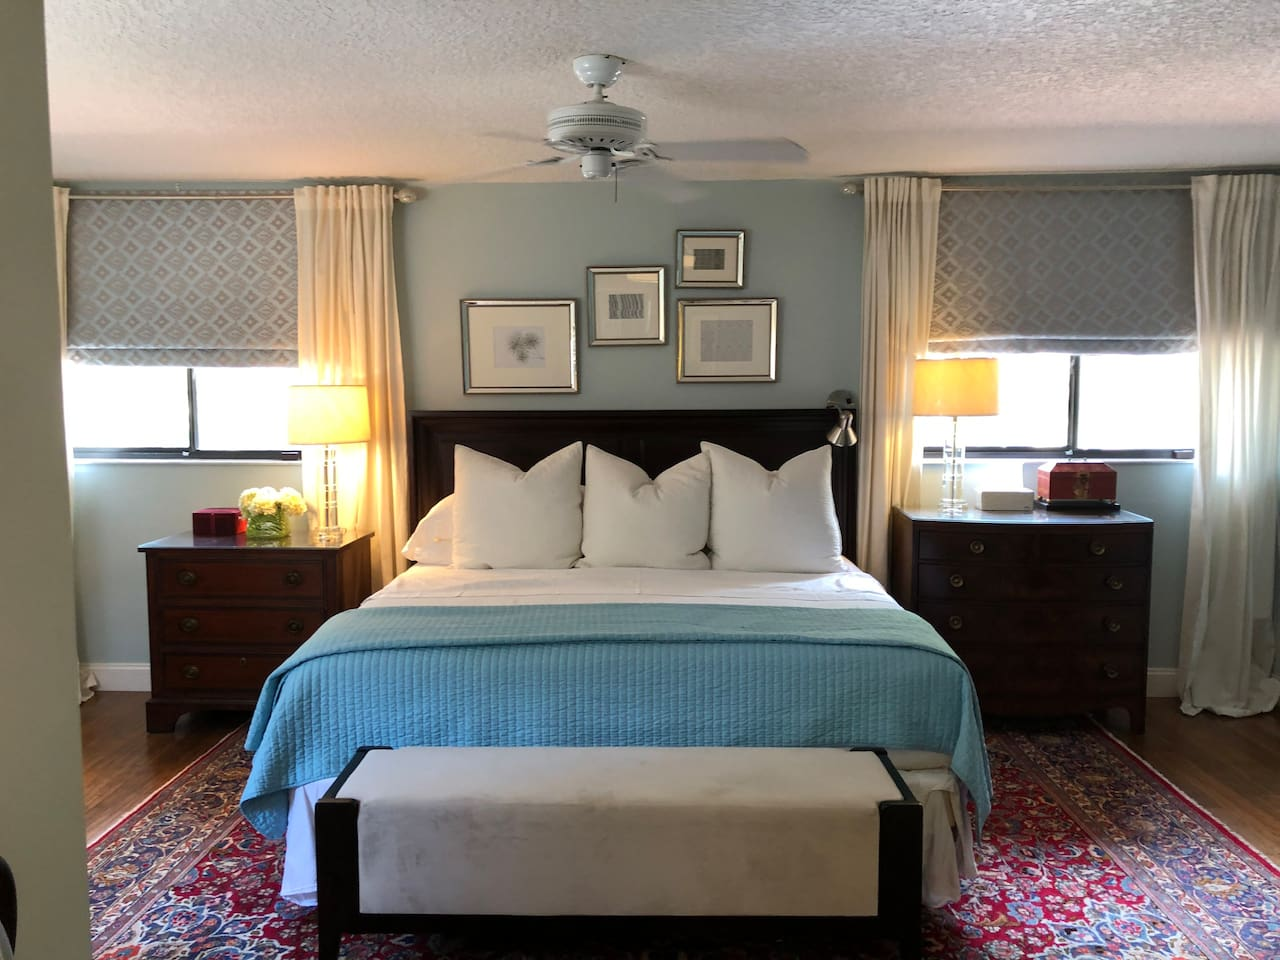 Huge room with plenty of clothing storage for a longer stay. Sleep like a baby in this top-of-line Sterns & Foster King size bed in the master bedroom suite complete with blackout Roman shades.